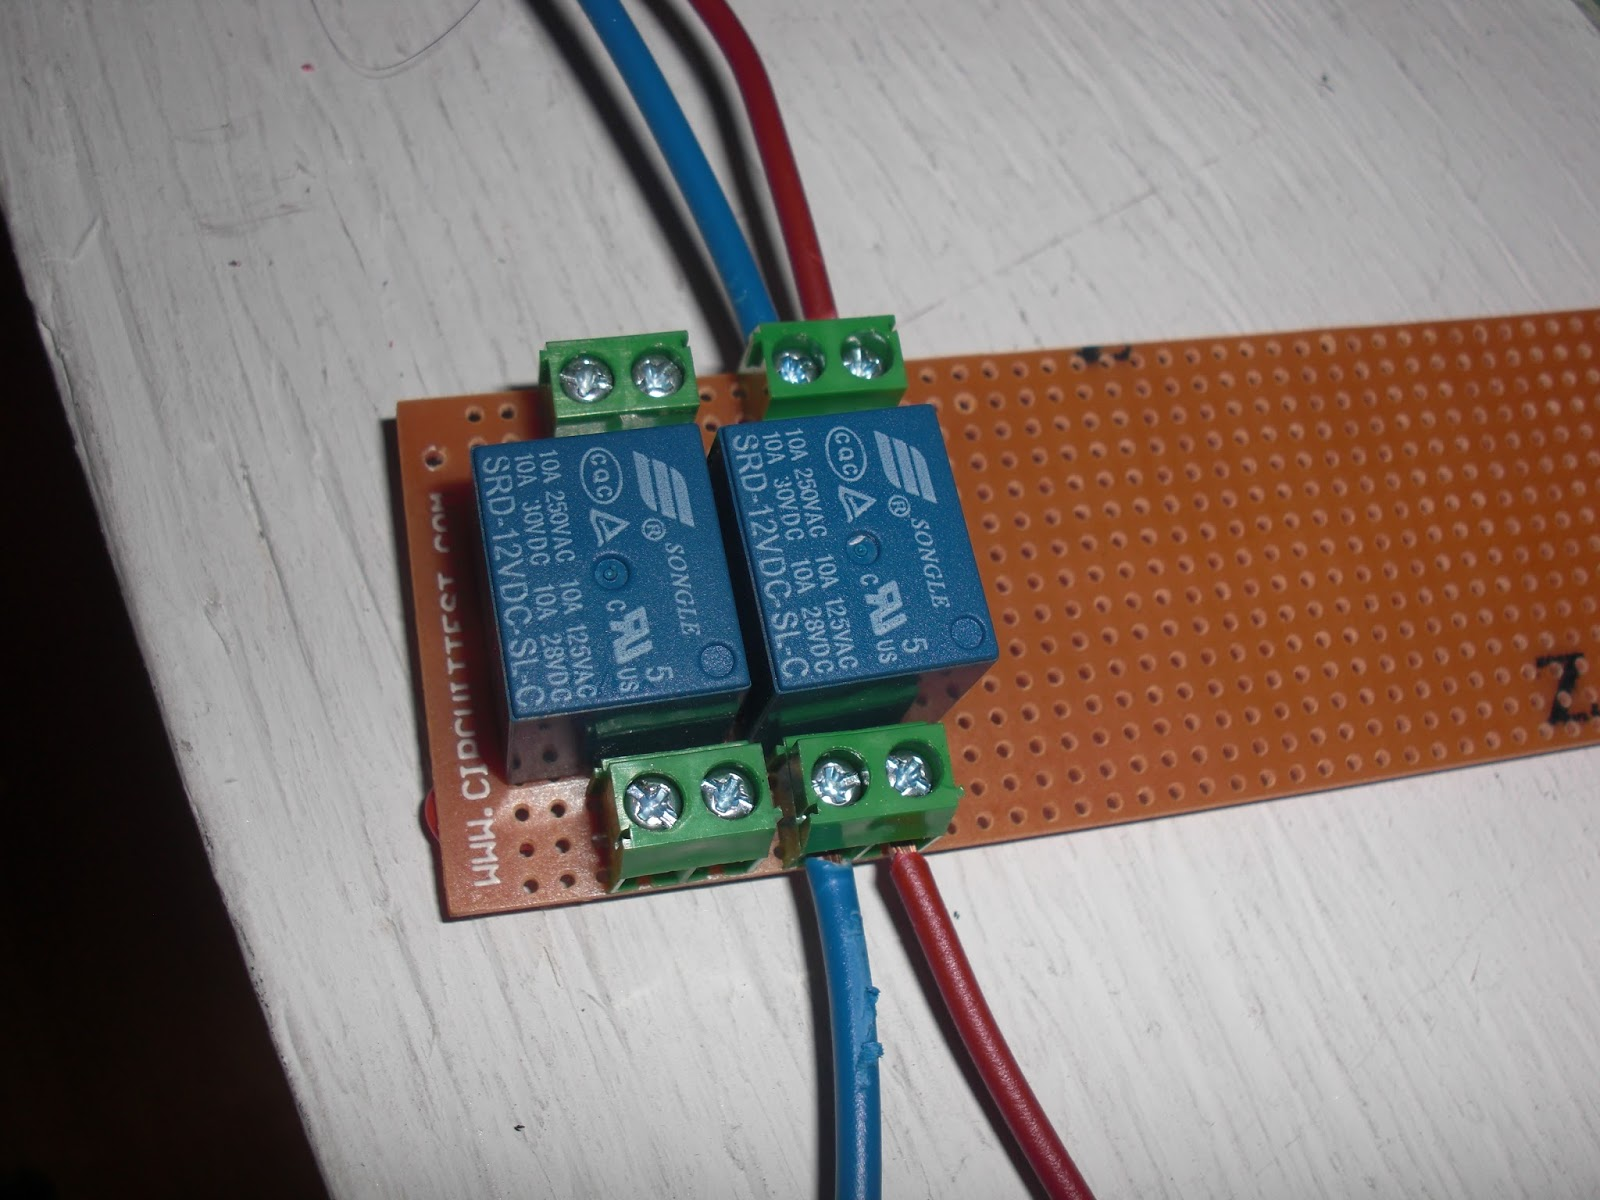 My Knight Rider 2000 Project Mini Relays Board For Space Matt Buttons Songle Spdt Relay Srd 12v I Started Soldering Songo To The Piece Of Proto Had Yesterday It Was A Bit Pain Get